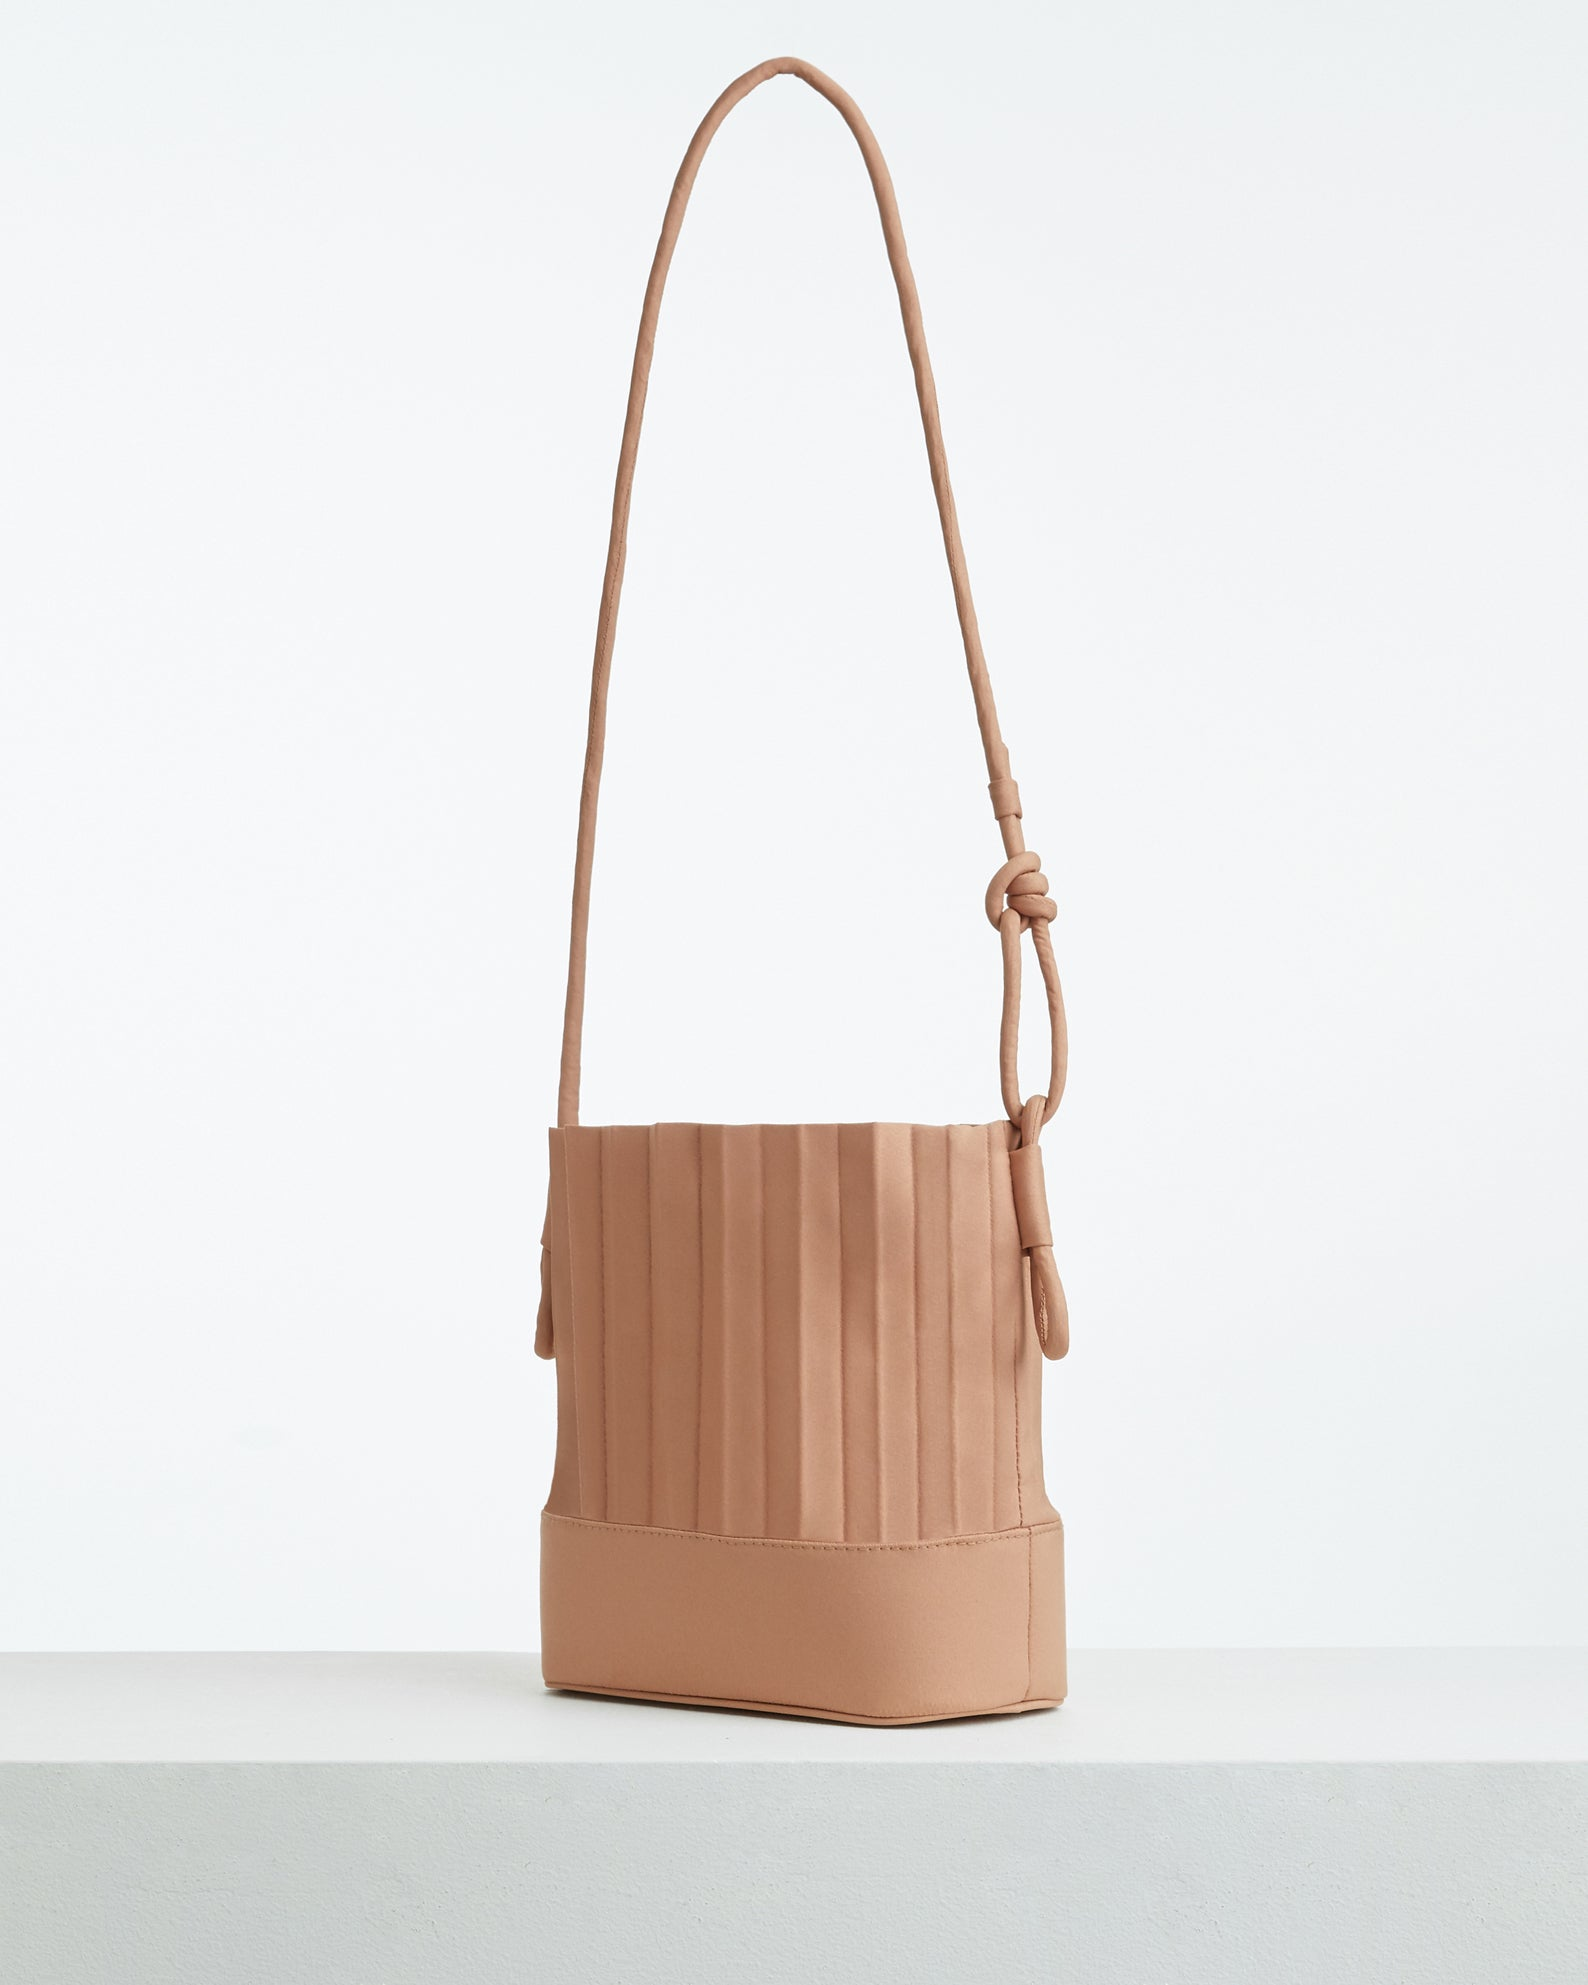 aPaddy (Pitcher) | Bucket bag in Sand